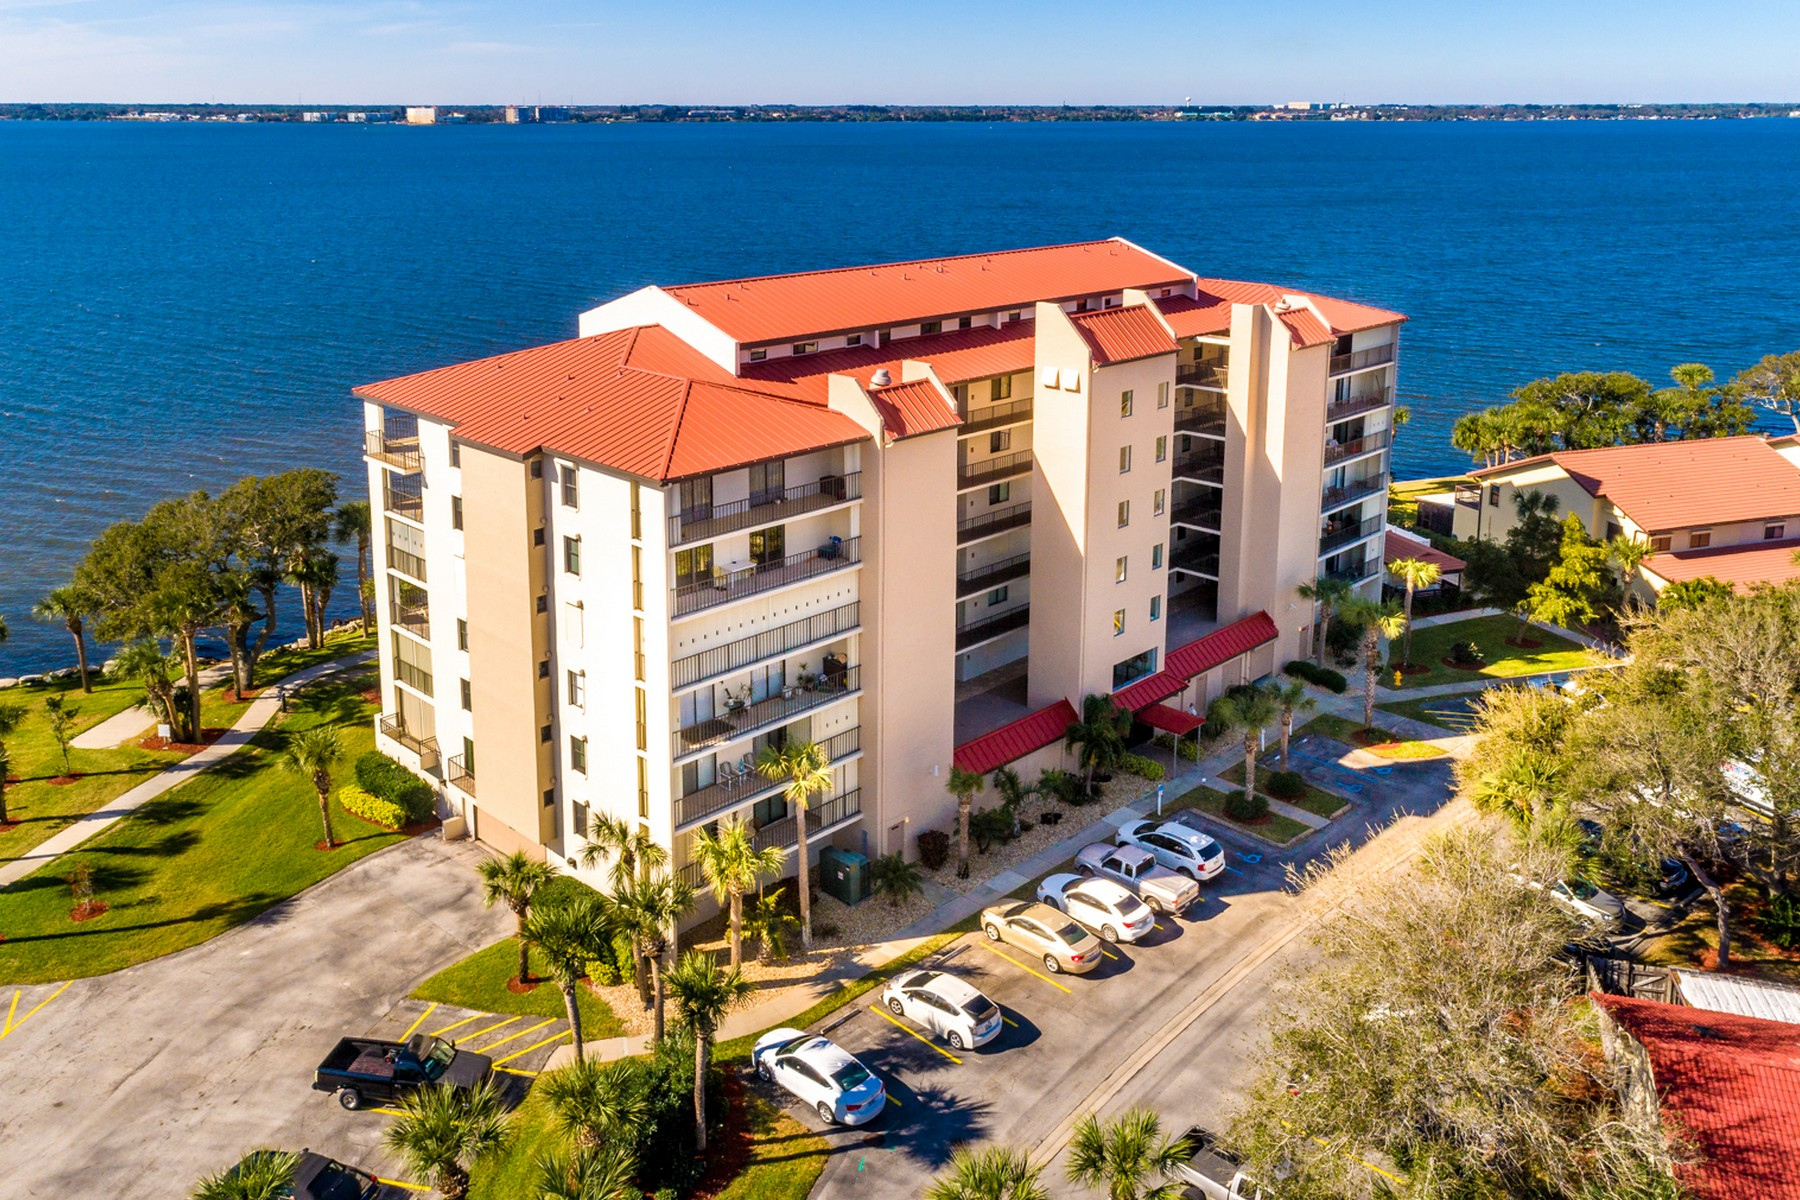 Riverfront Penthouse condo in desirable Beach Woods. 3220 River Villa Way Unit 164 Melbourne Beach, Florida 32951 Vereinigte Staaten